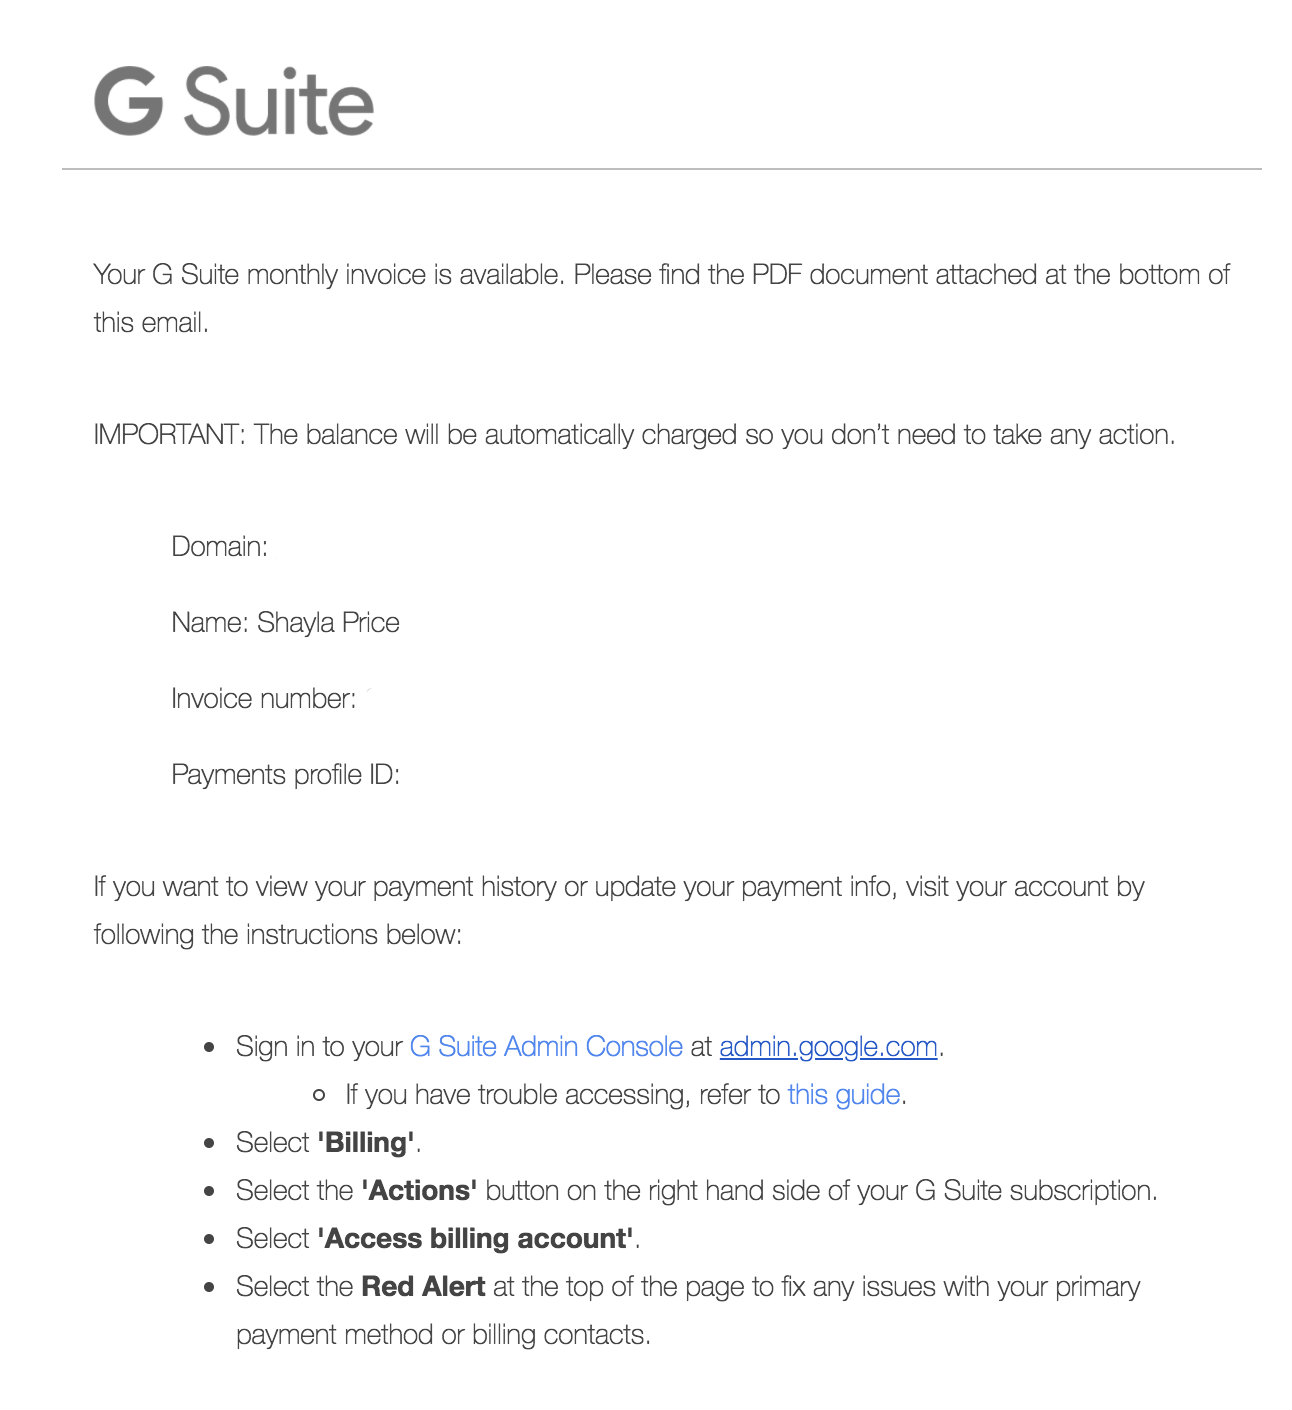 transactional email G Suite example